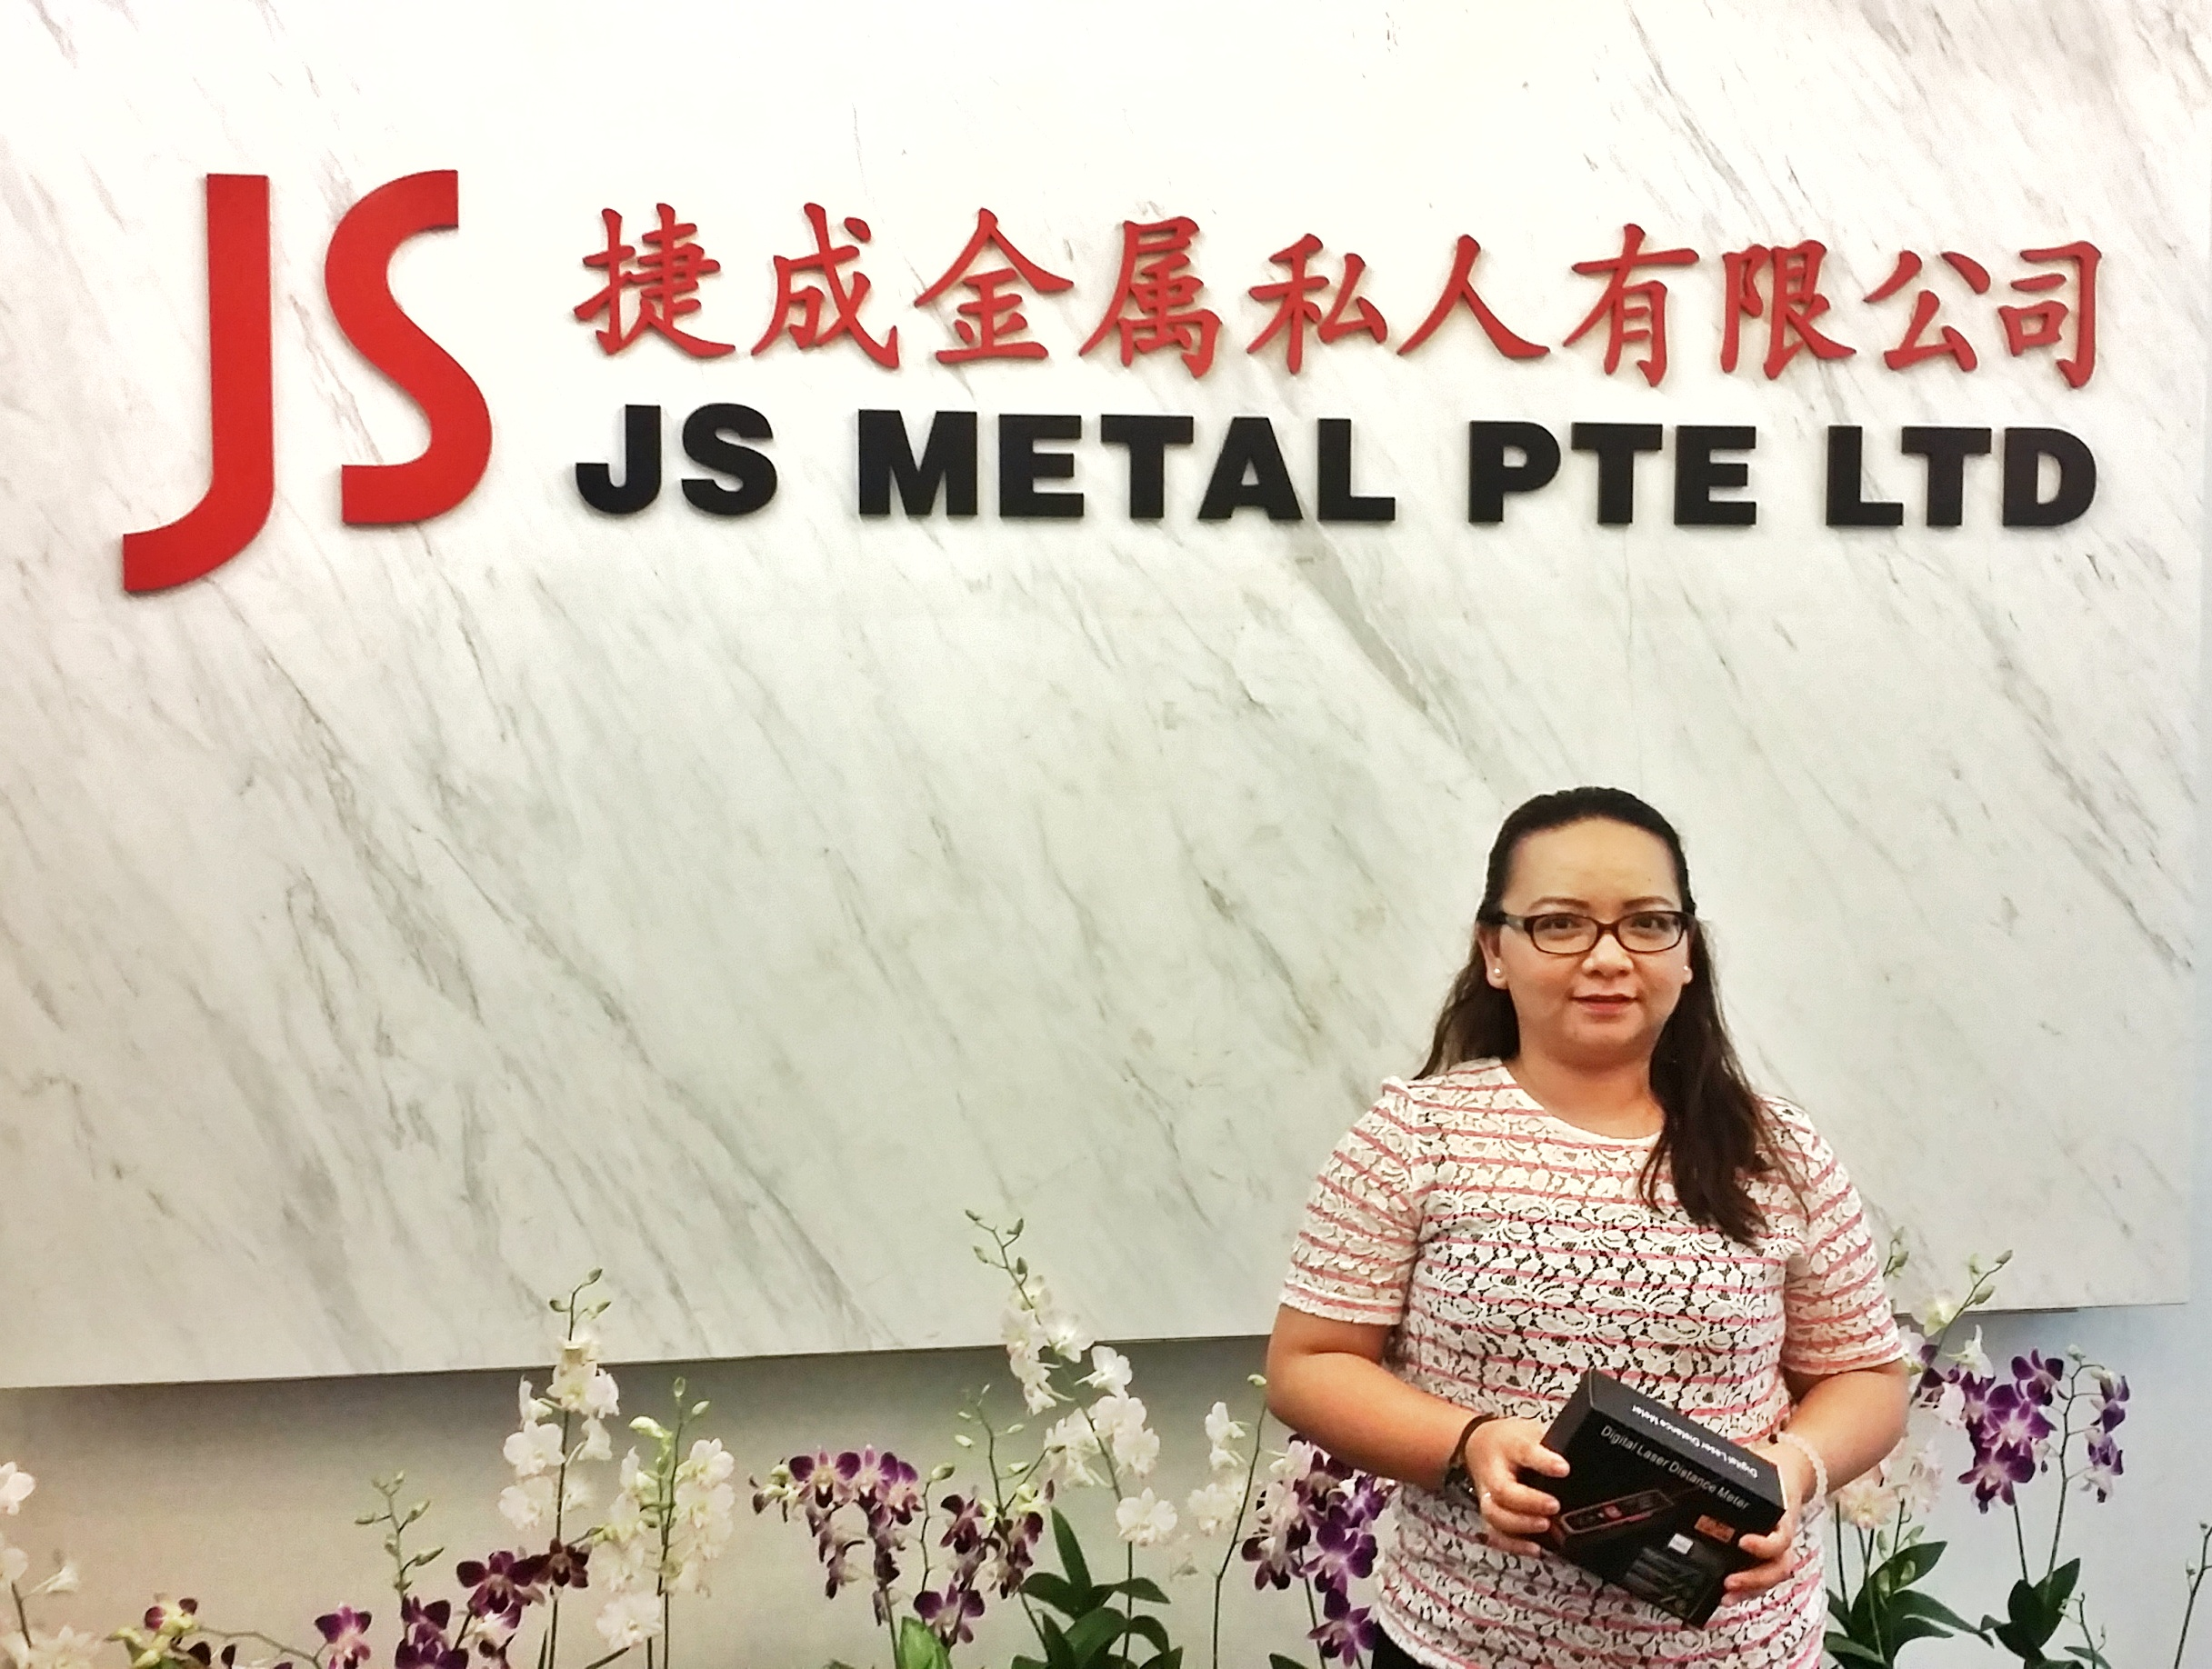 JS Metal Pte Ltd representative receiving the free gift of laser distance measure.